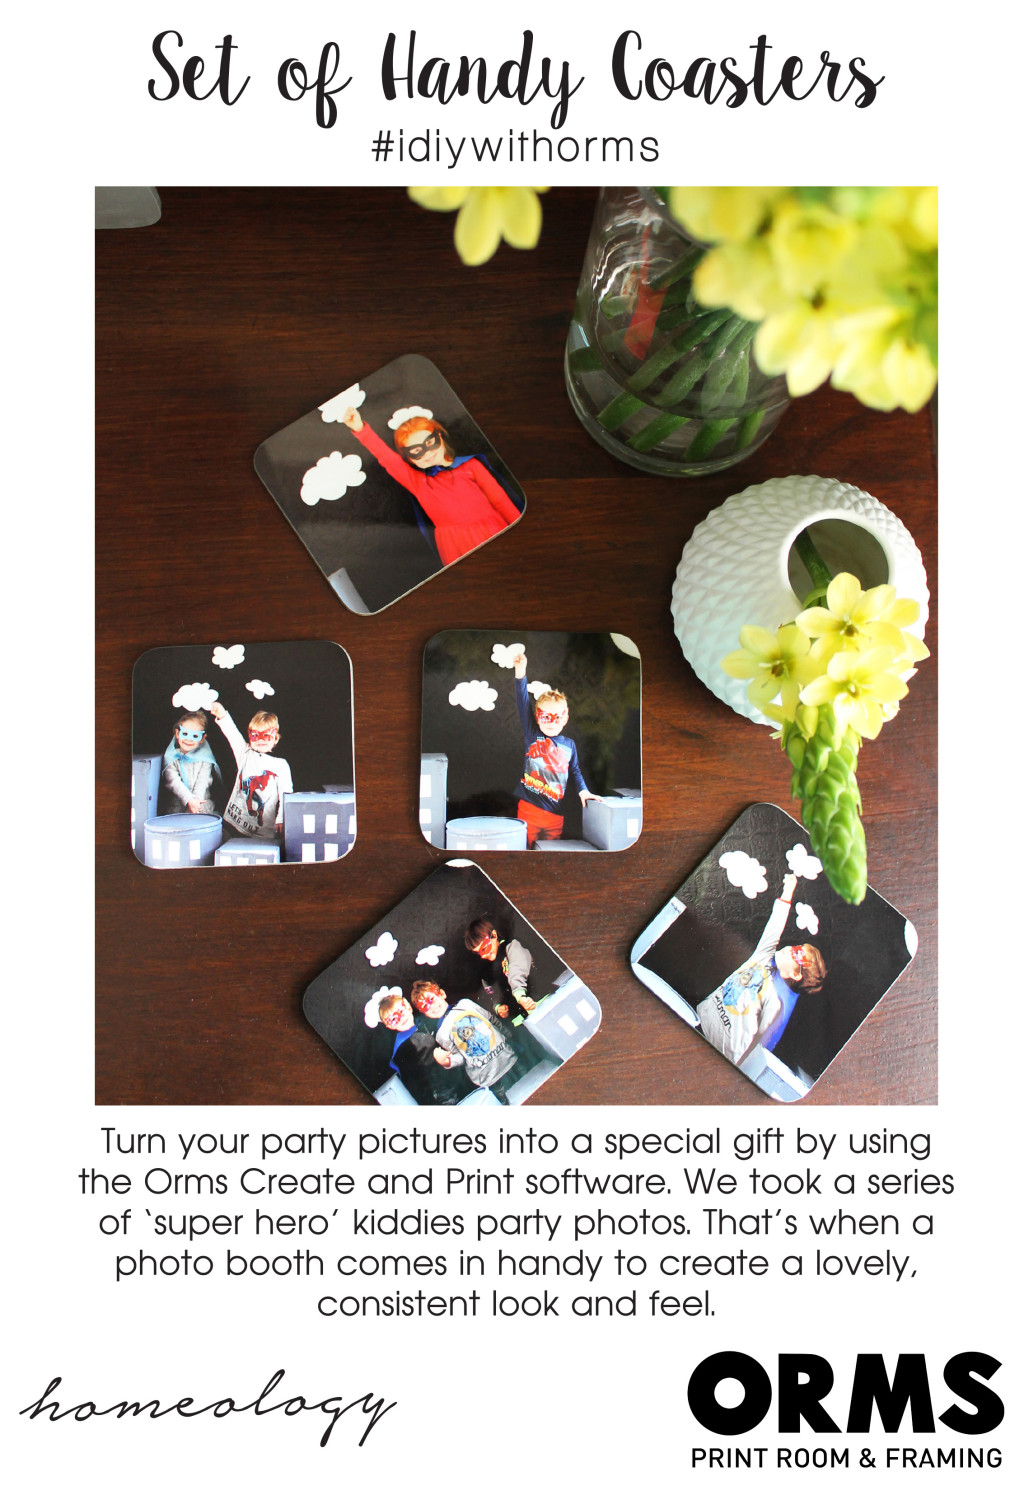 DIY Coasters - Orms Print Room and Framing and Homology DIY Project - Personalised Gift Ideas 2015